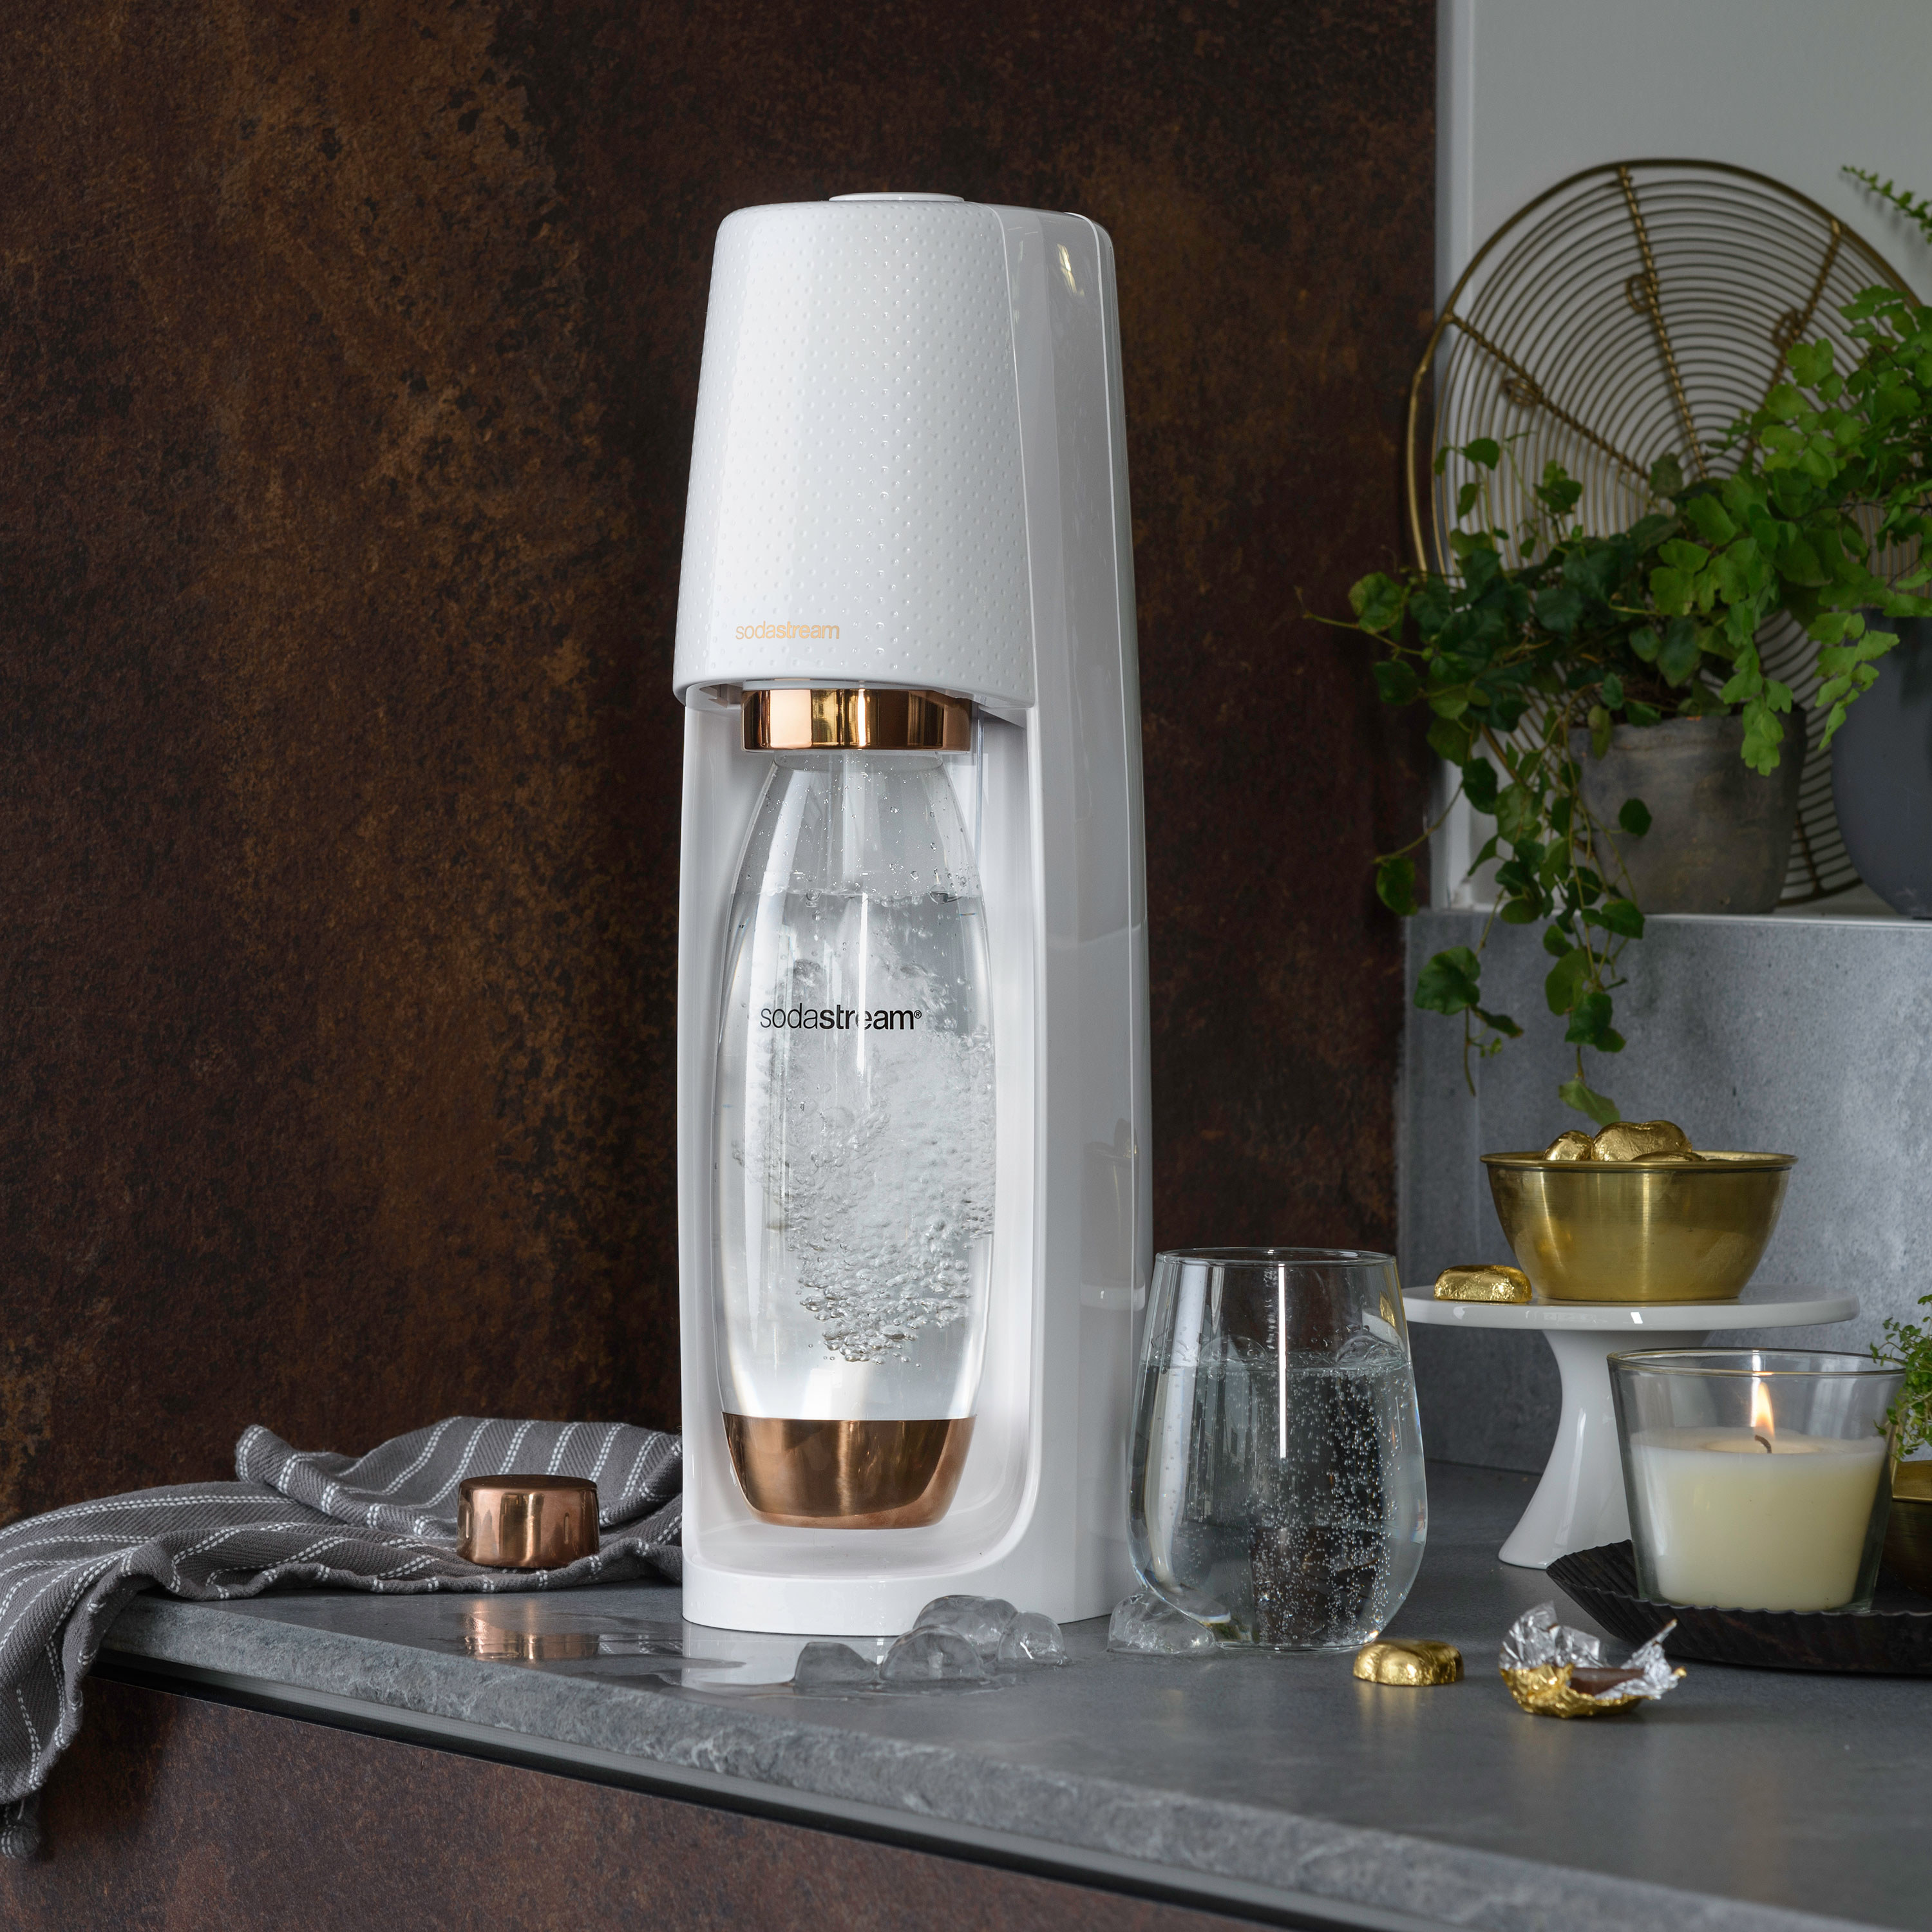 white and rose gold soda stream machine on a counter next to a glass of carbonated water